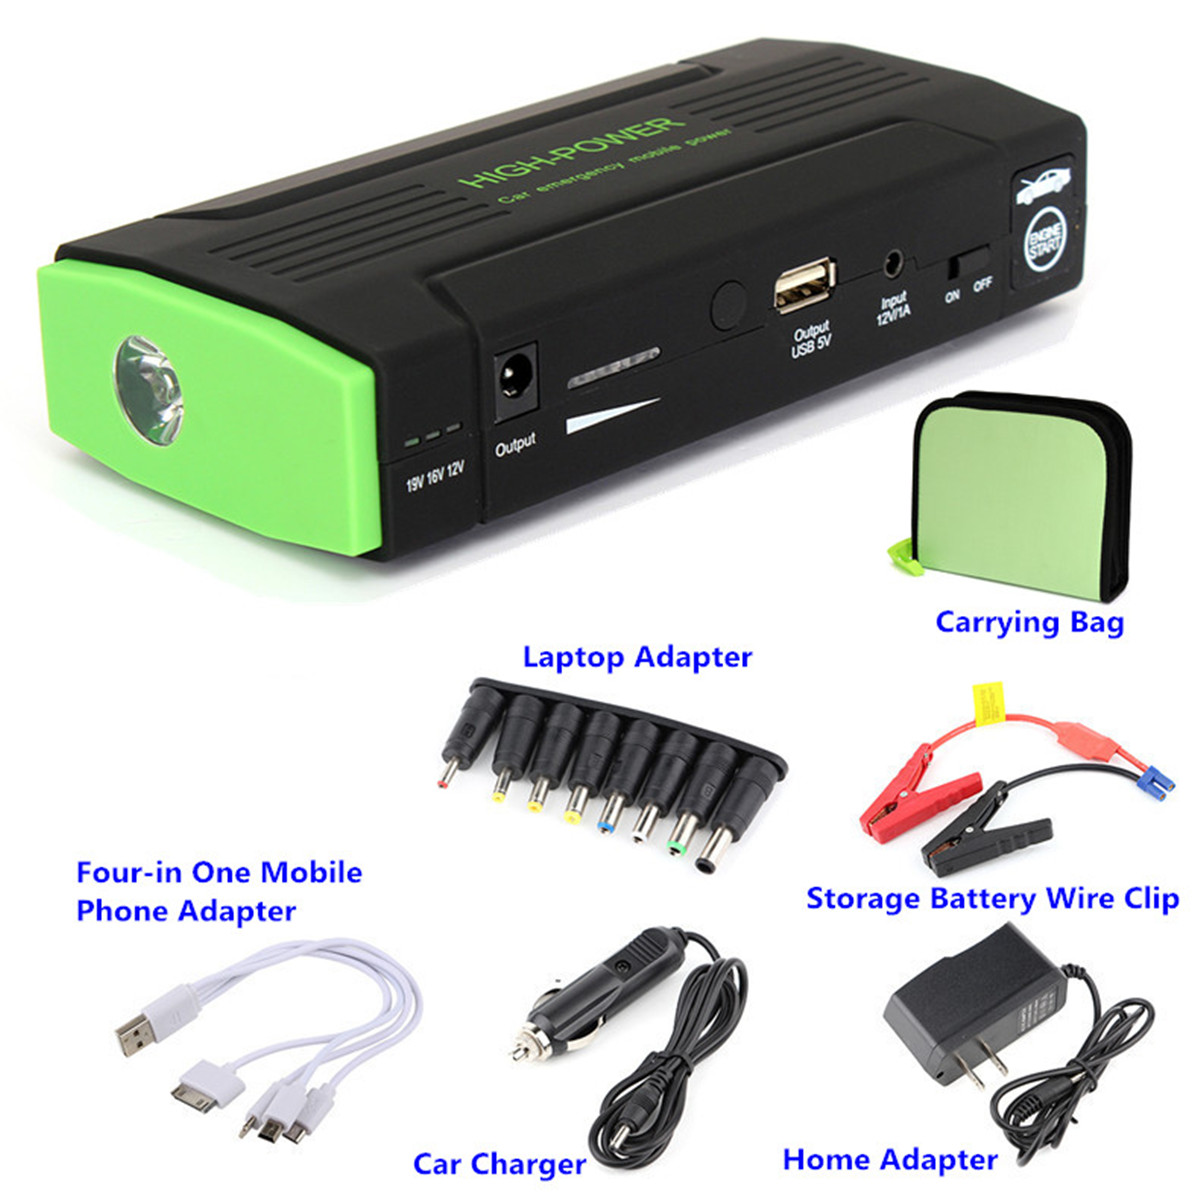 Multifunction Jump Starter 30000mAh 12V/16V/19V 400A Portable Power Bank Car Battery Booster Charger Starting DeviceMultifunction Jump Starter 30000mAh 12V/16V/19V 400A Portable Power Bank Car Battery Booster Charger Starting Device